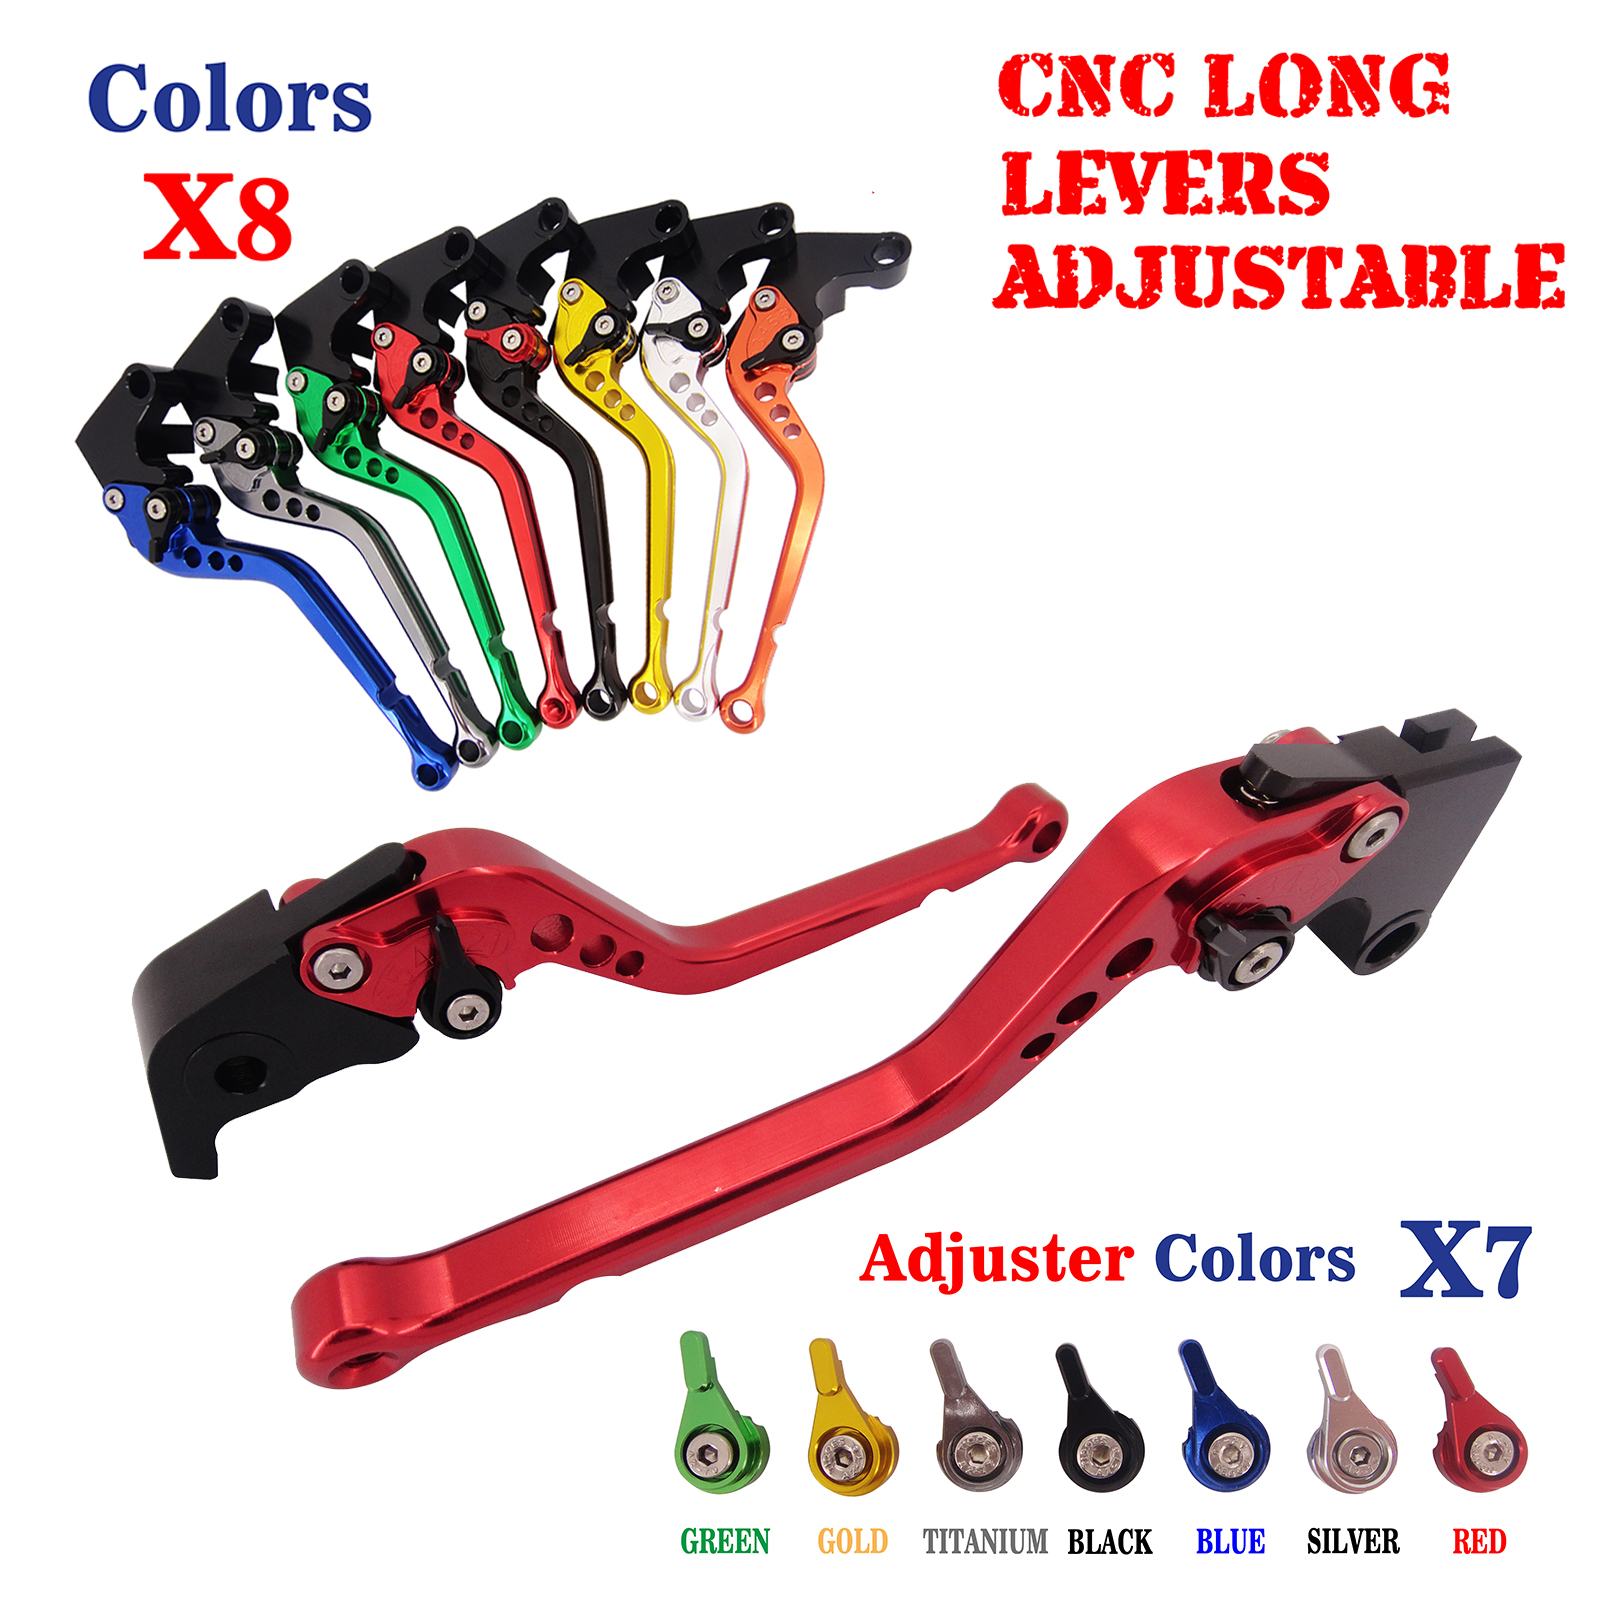 CNC Long Adjustable Brake Clutch Levers For Honda CB599/CB600 Hornet  CBR900RR NC700 NC750 S/X CBR600 F2 F3 F4 F4i 1991-07